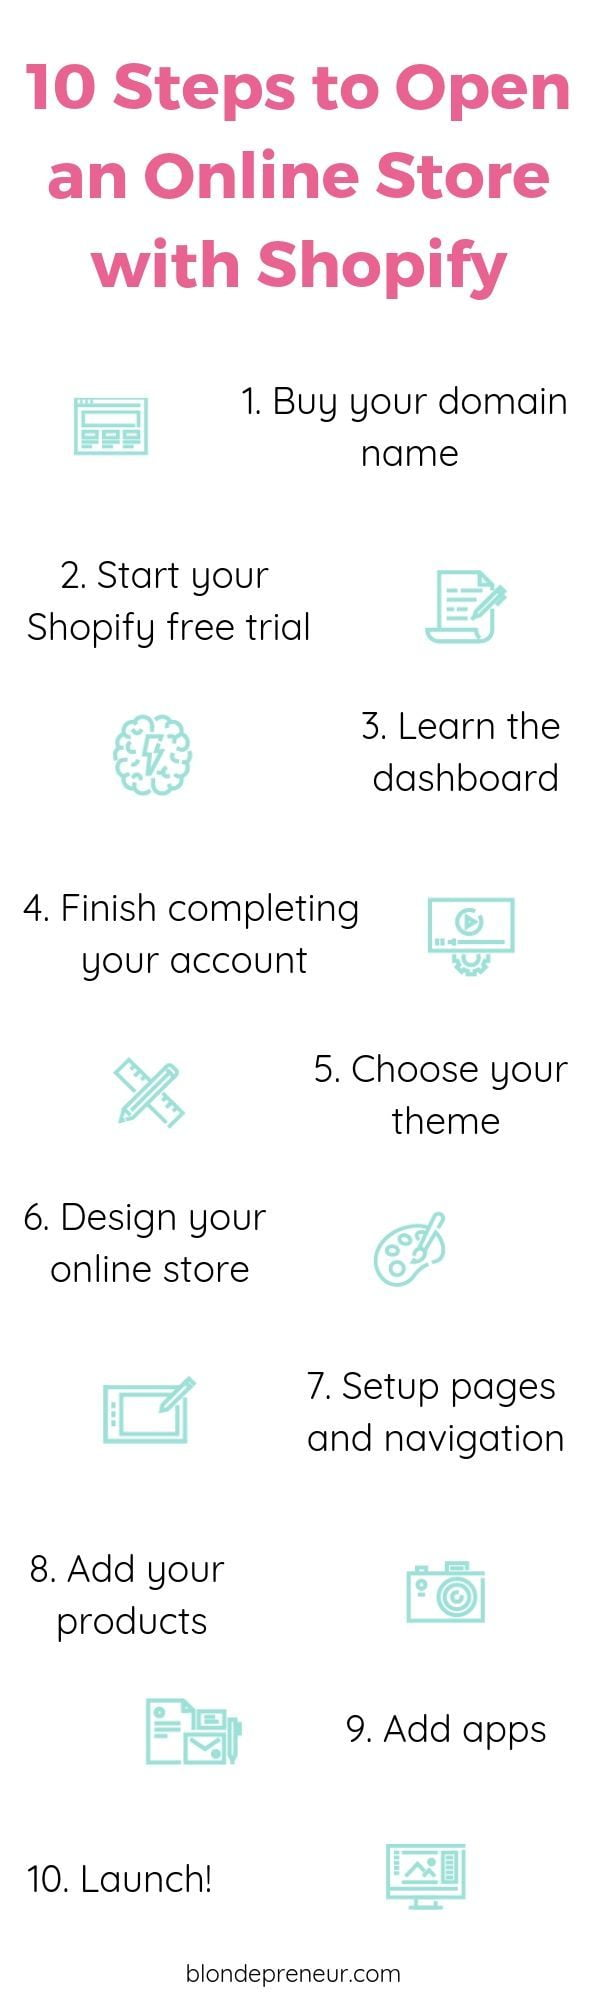 The steps to open an online store